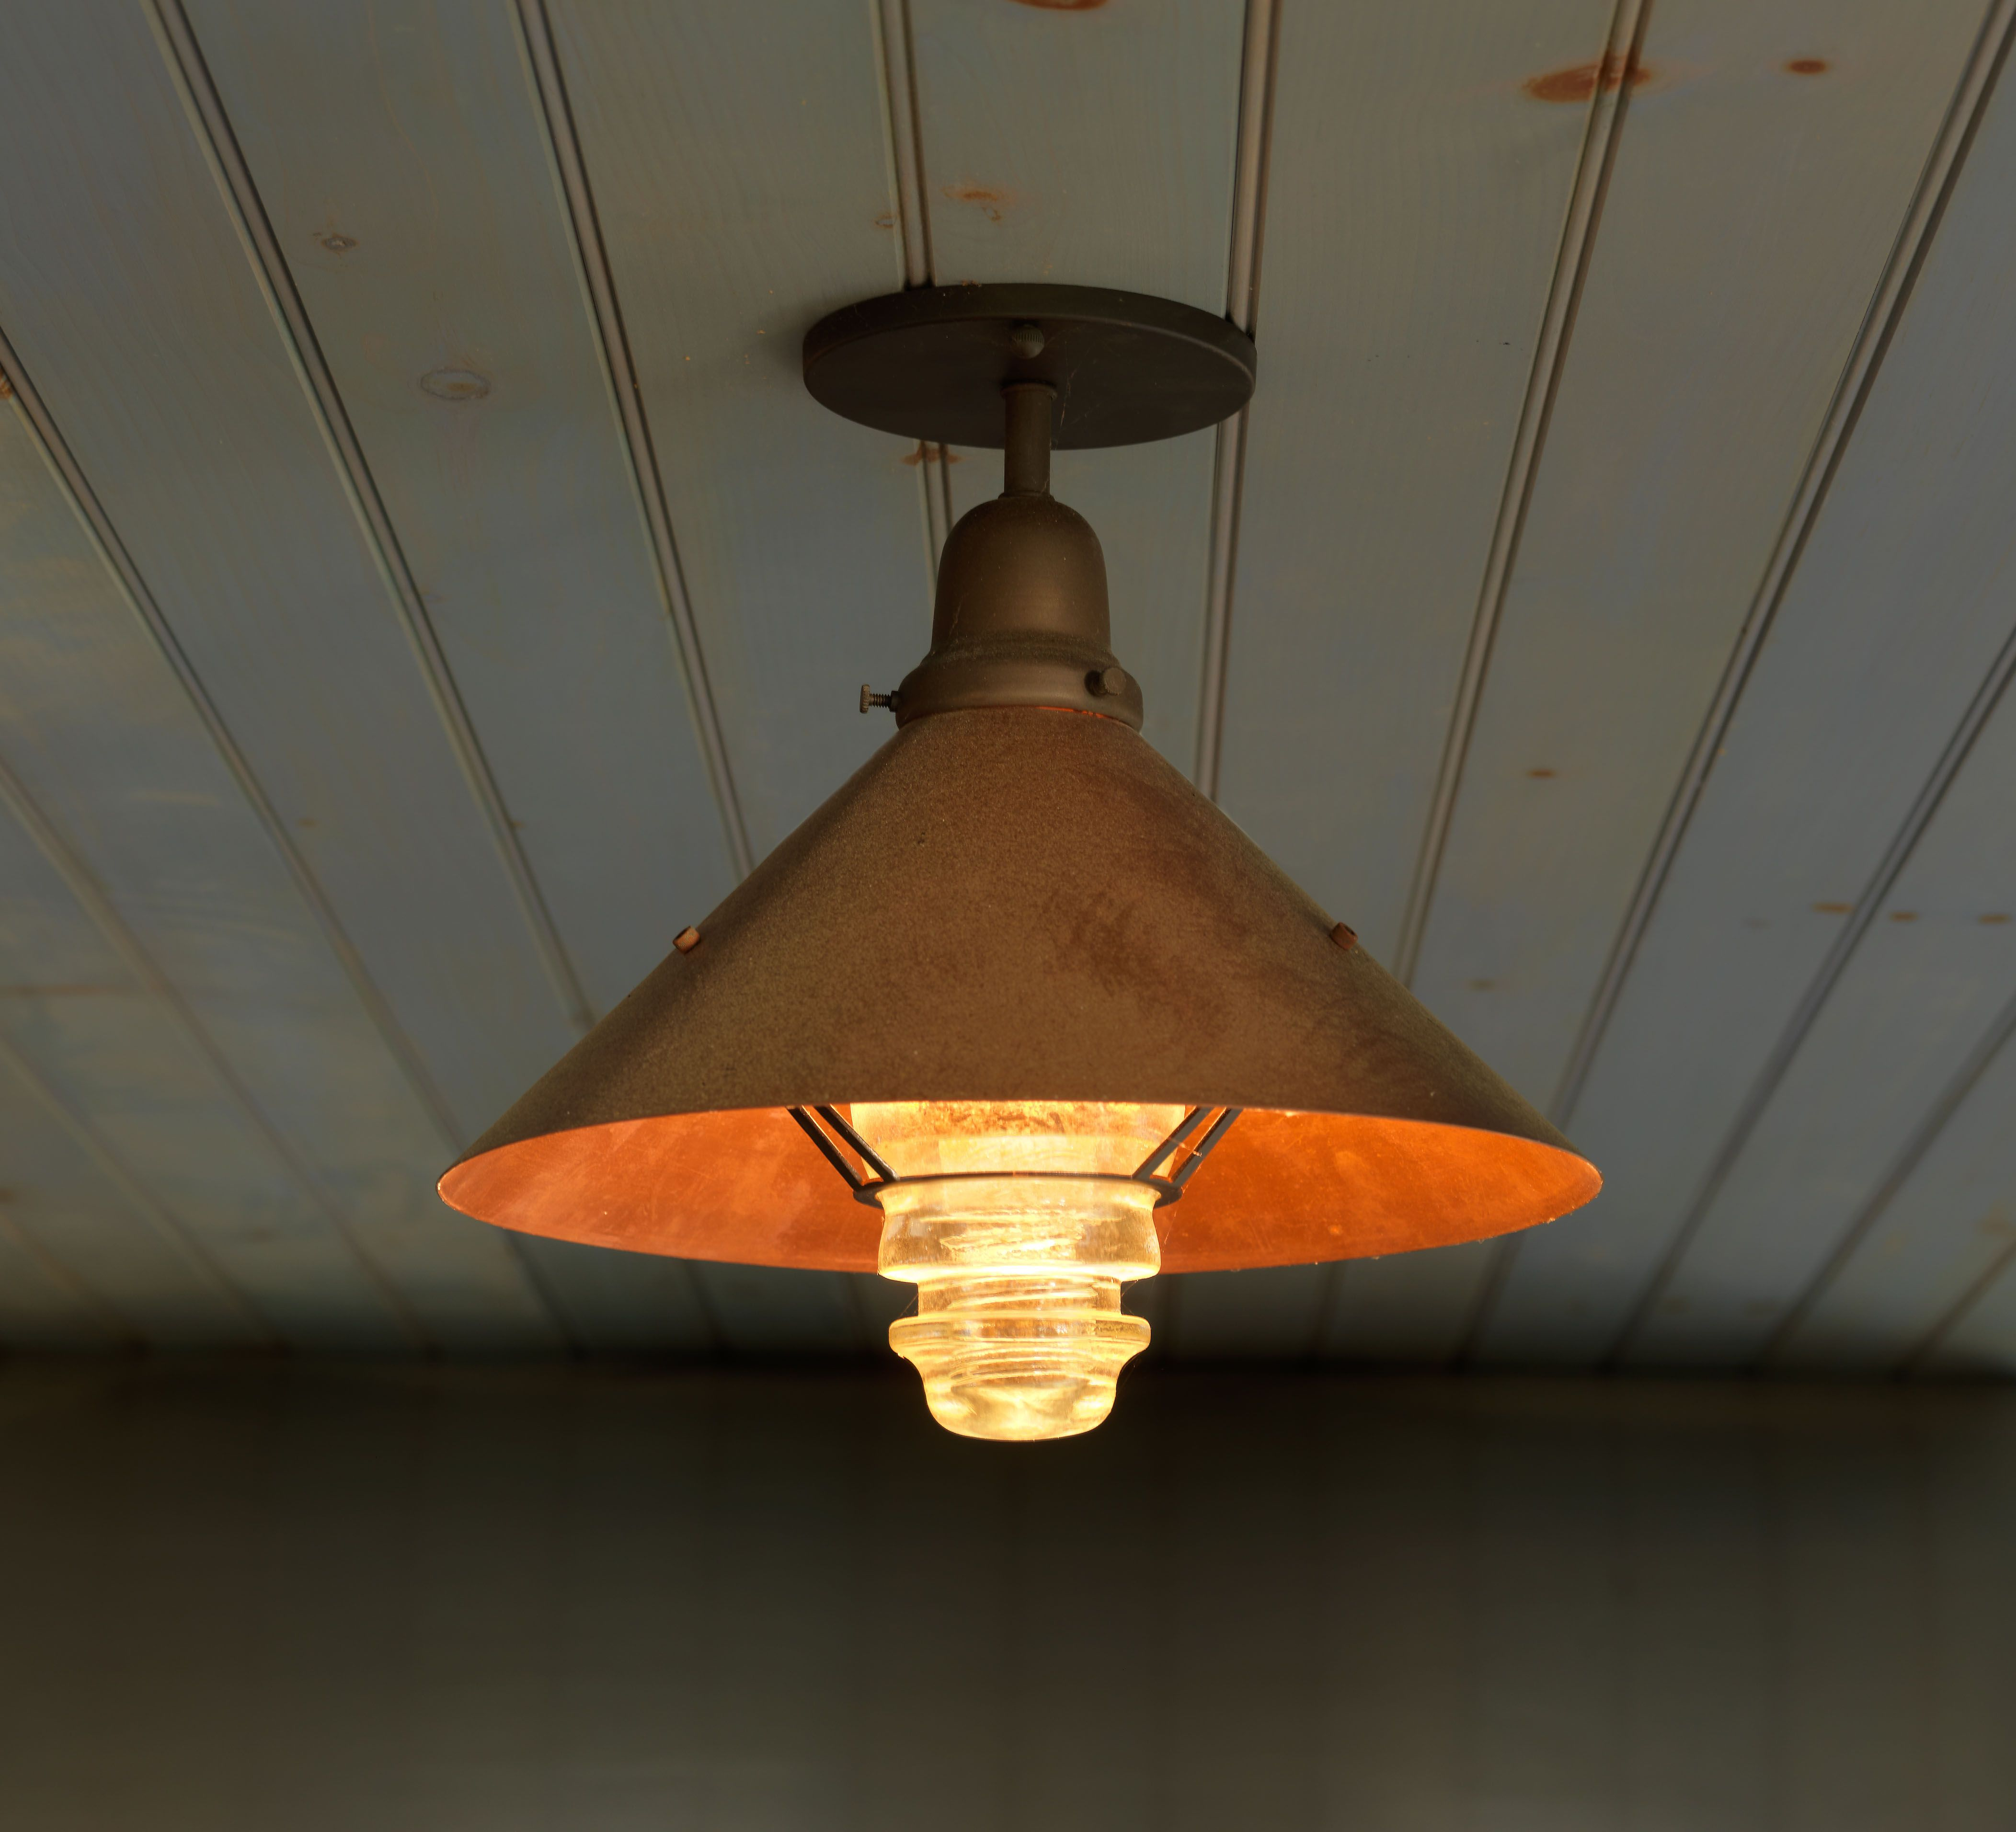 copper shade with vintage glass insulator to diffuse the light